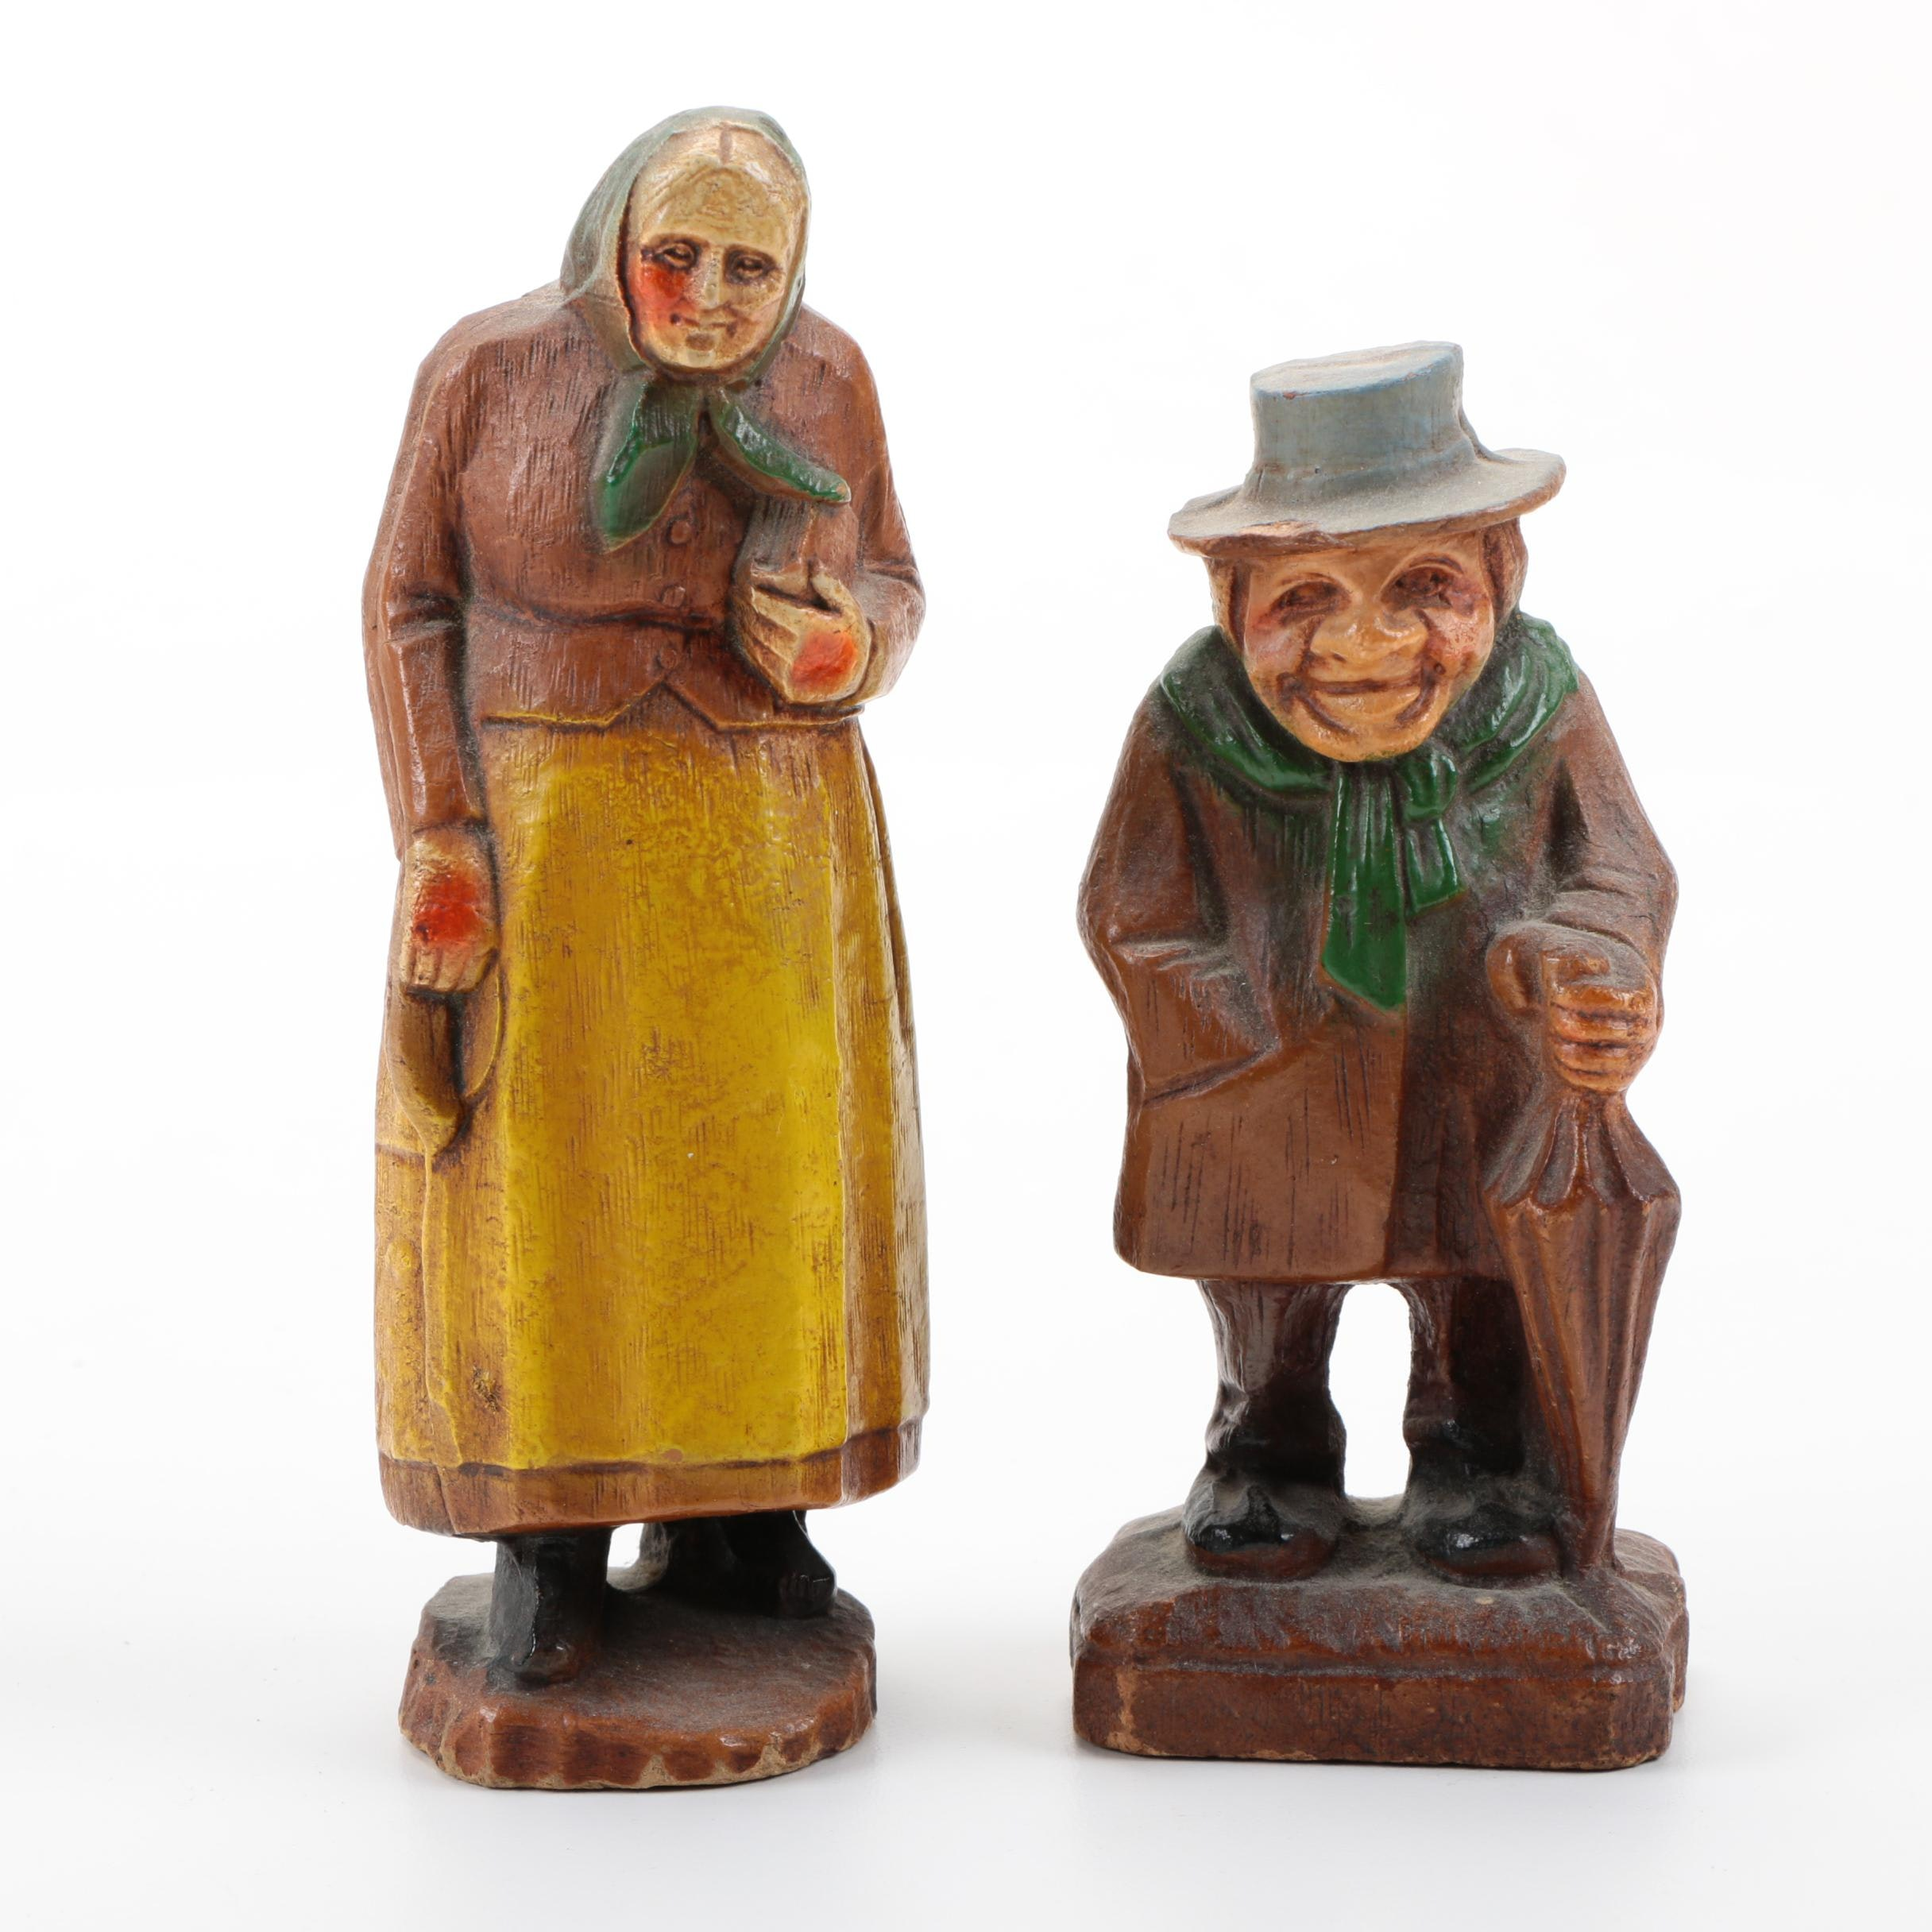 Hand-Painted Wooden Figurines